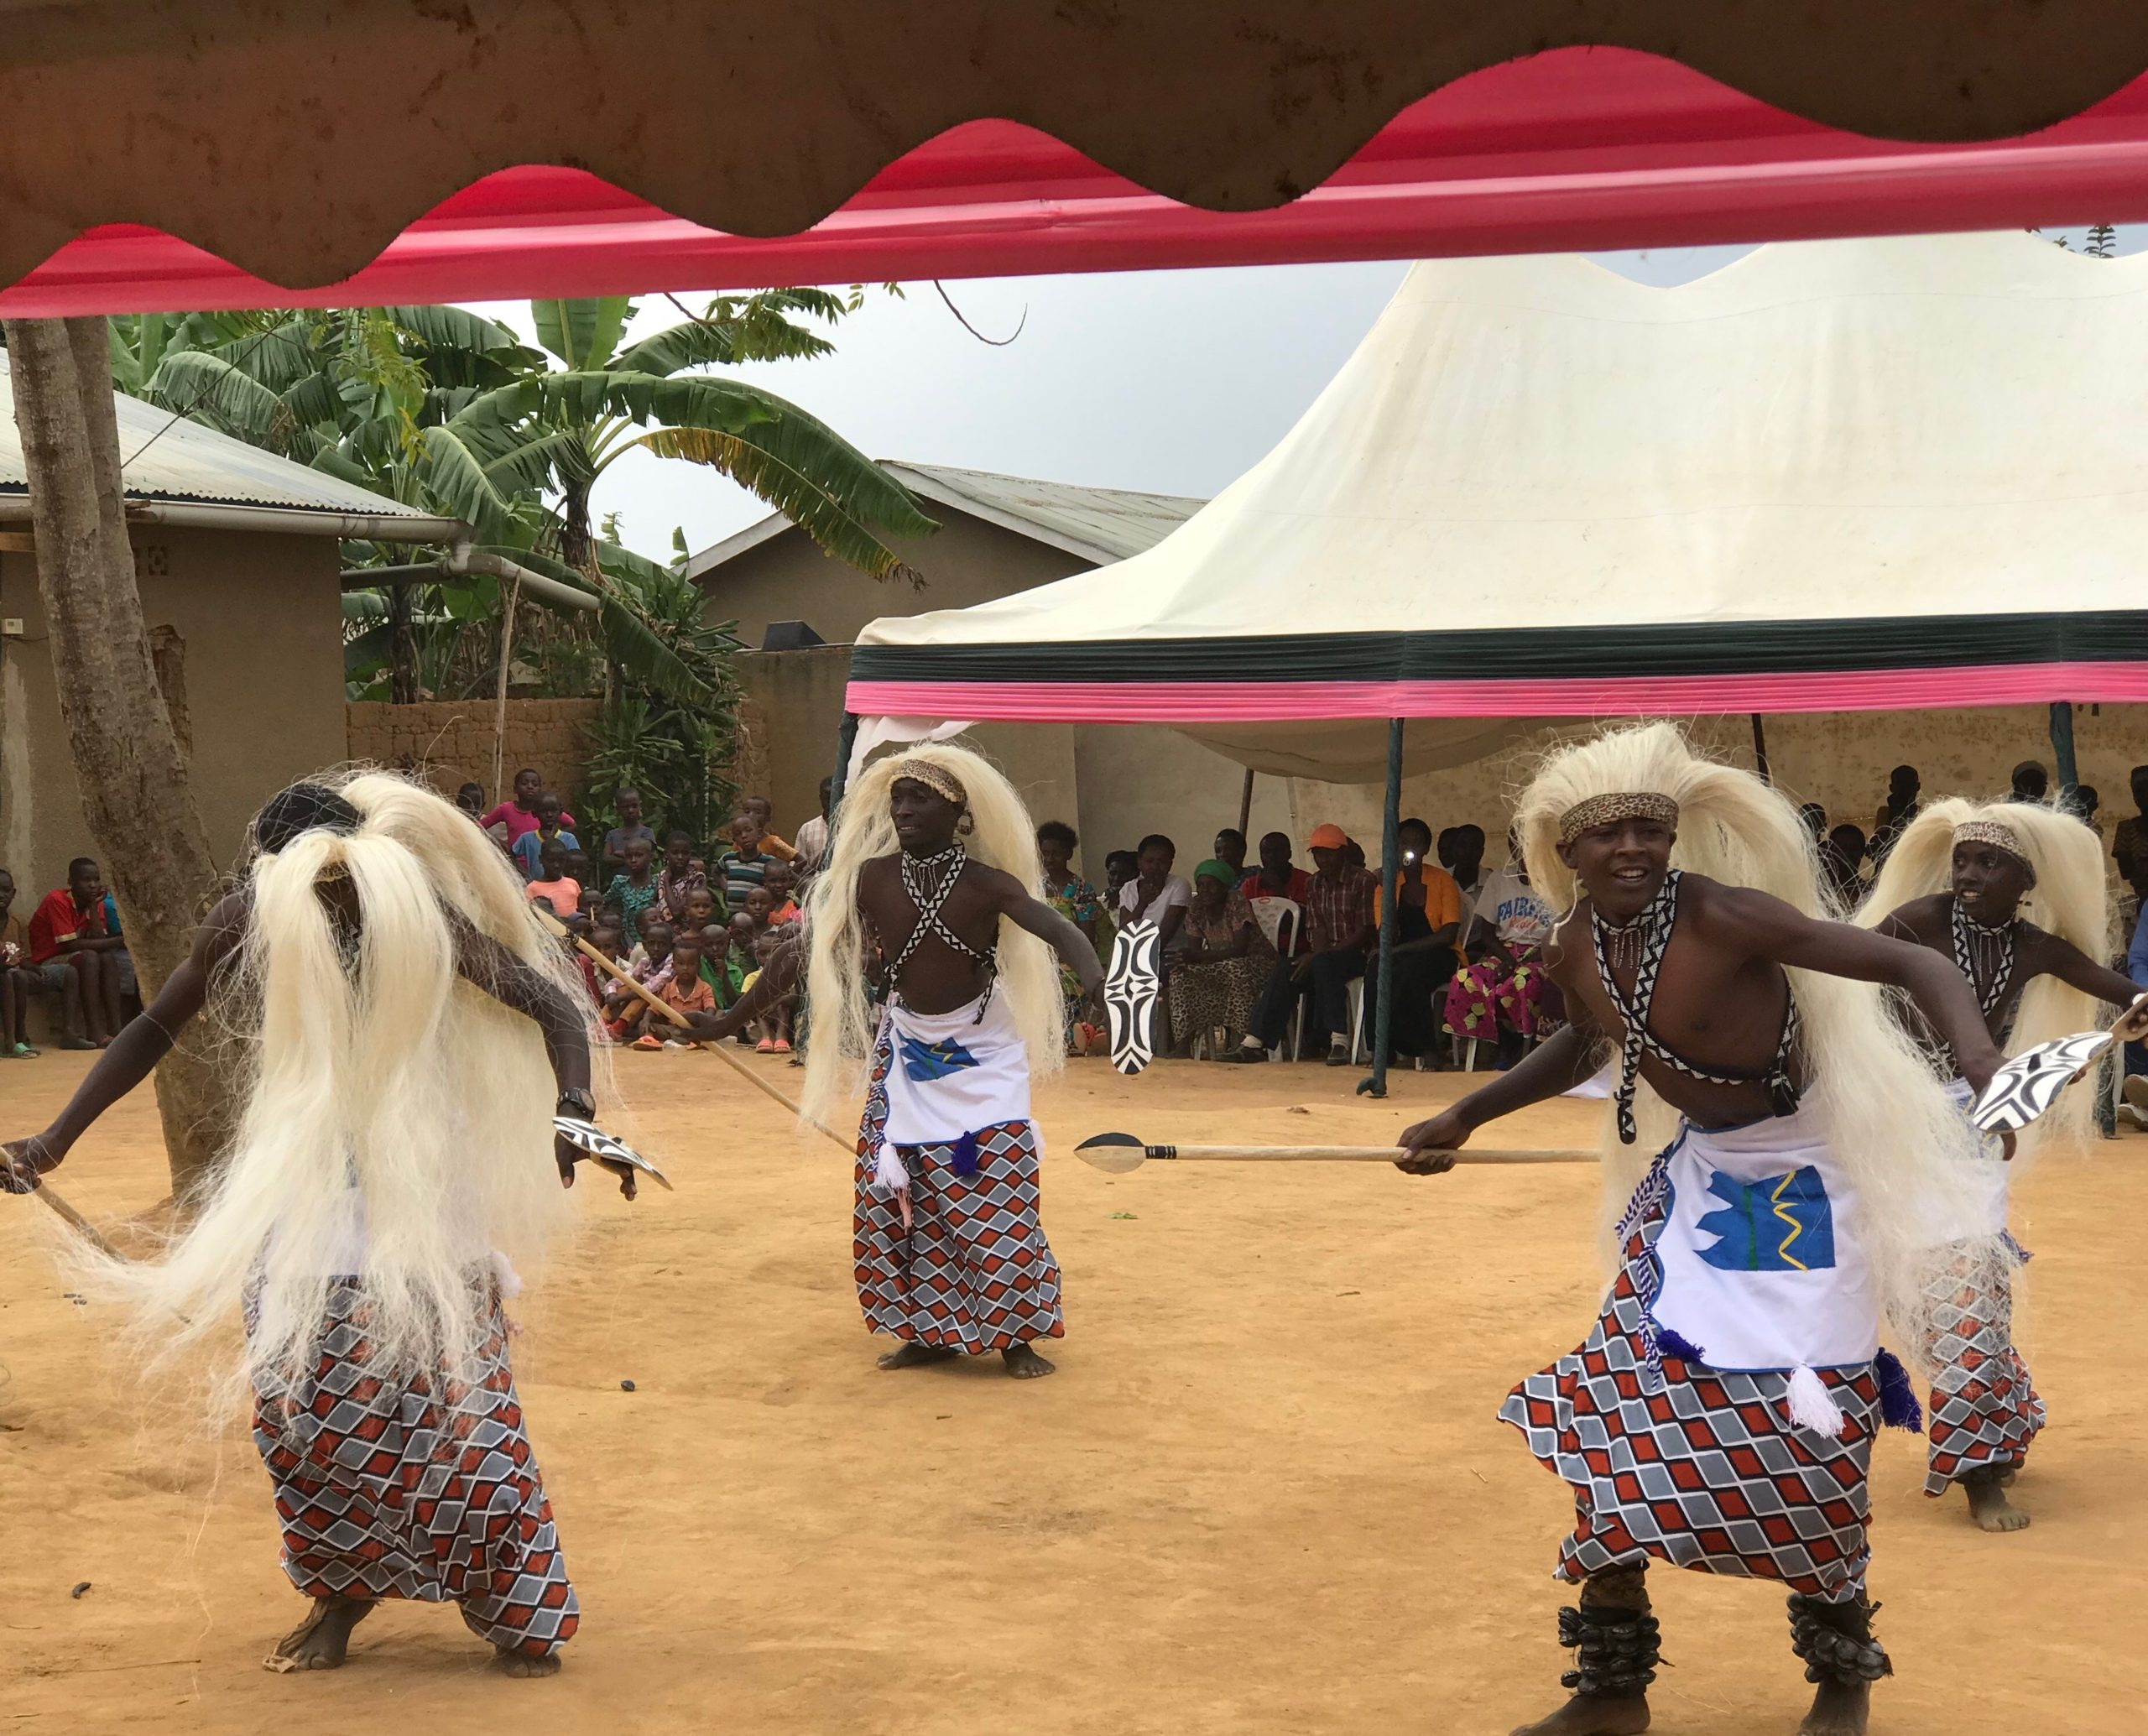 traditional dancers at a reconciliation village in Rwanda